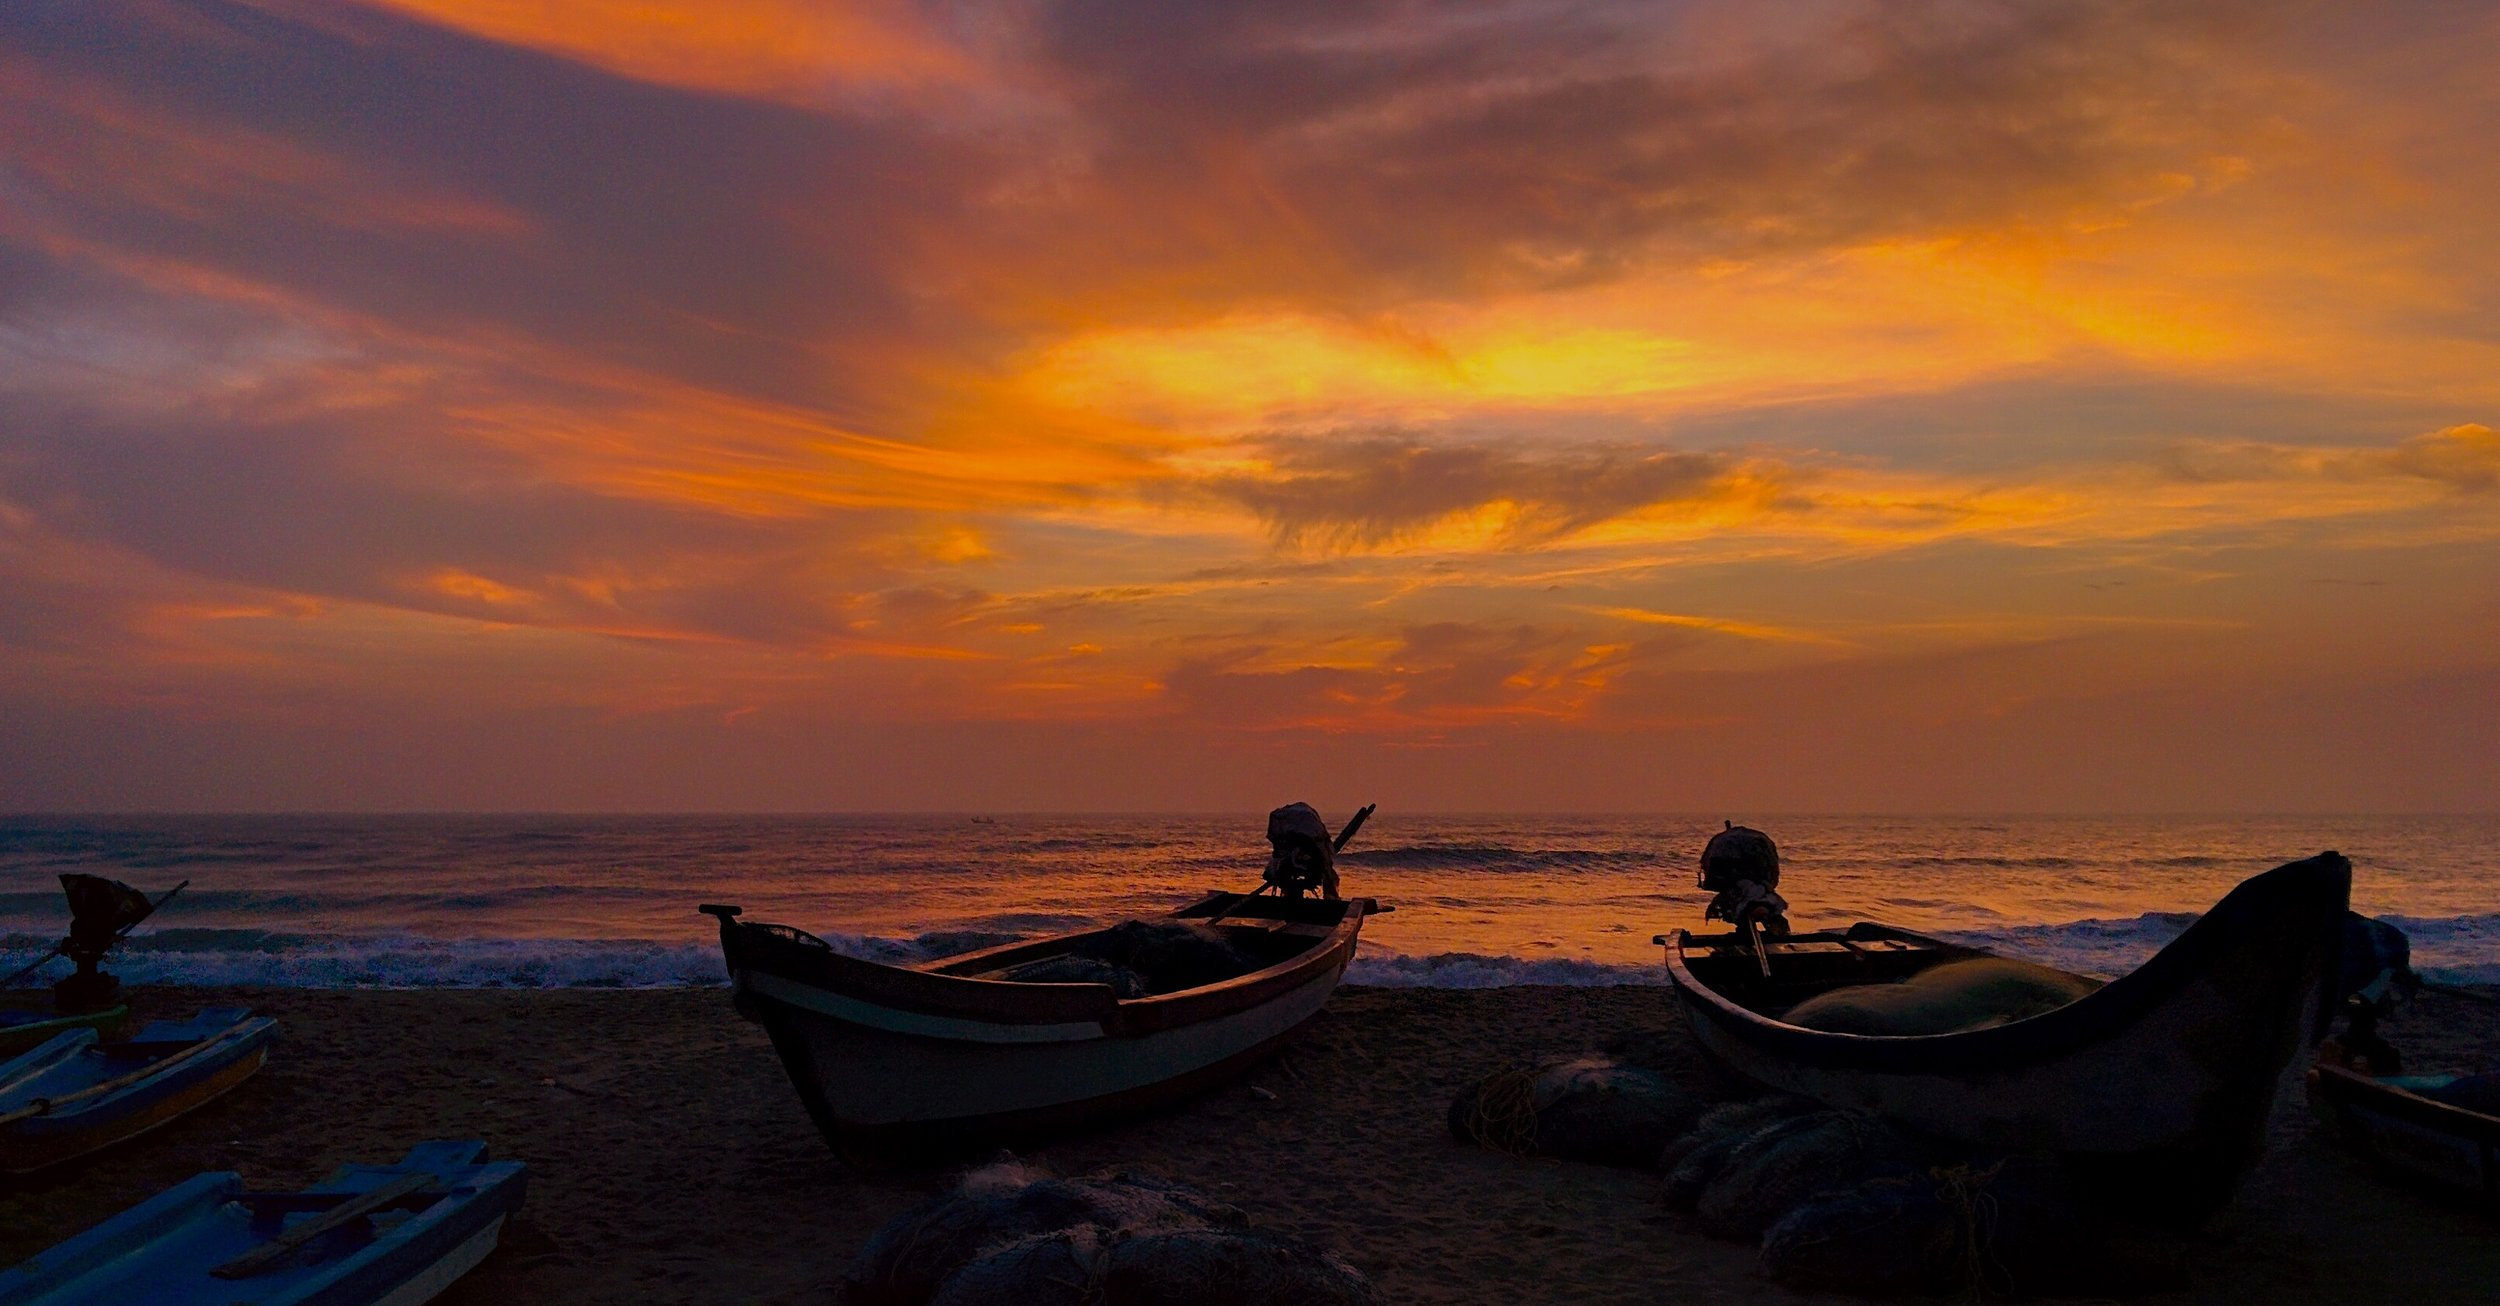 Silhouettes against a sultry sky. An idyllic Pondicherry dawn... but watch your feet!